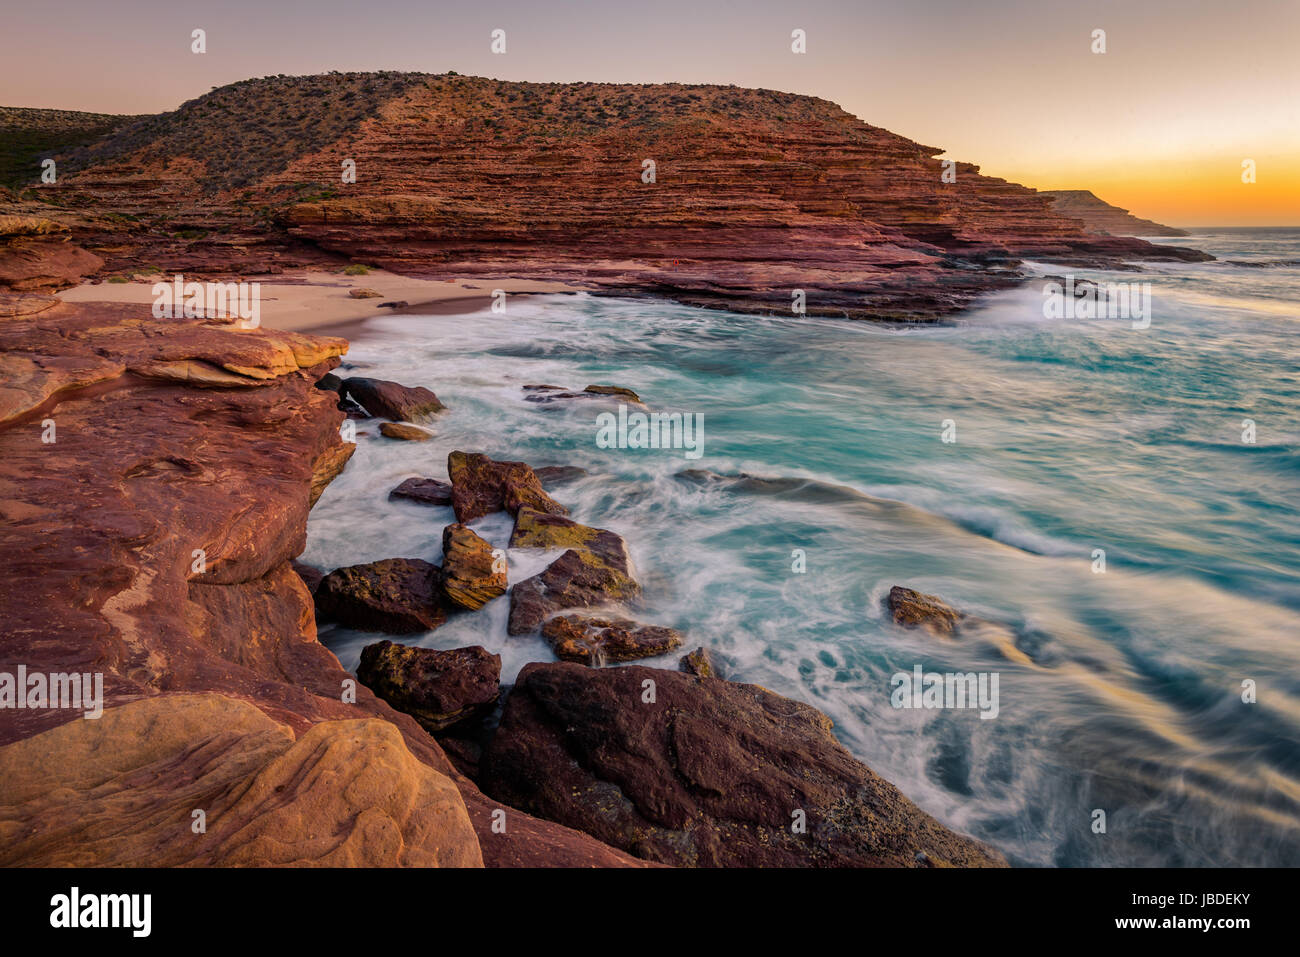 Sunset at Pot Alley, Kalbarri National Park, Western Australia - Stock Image